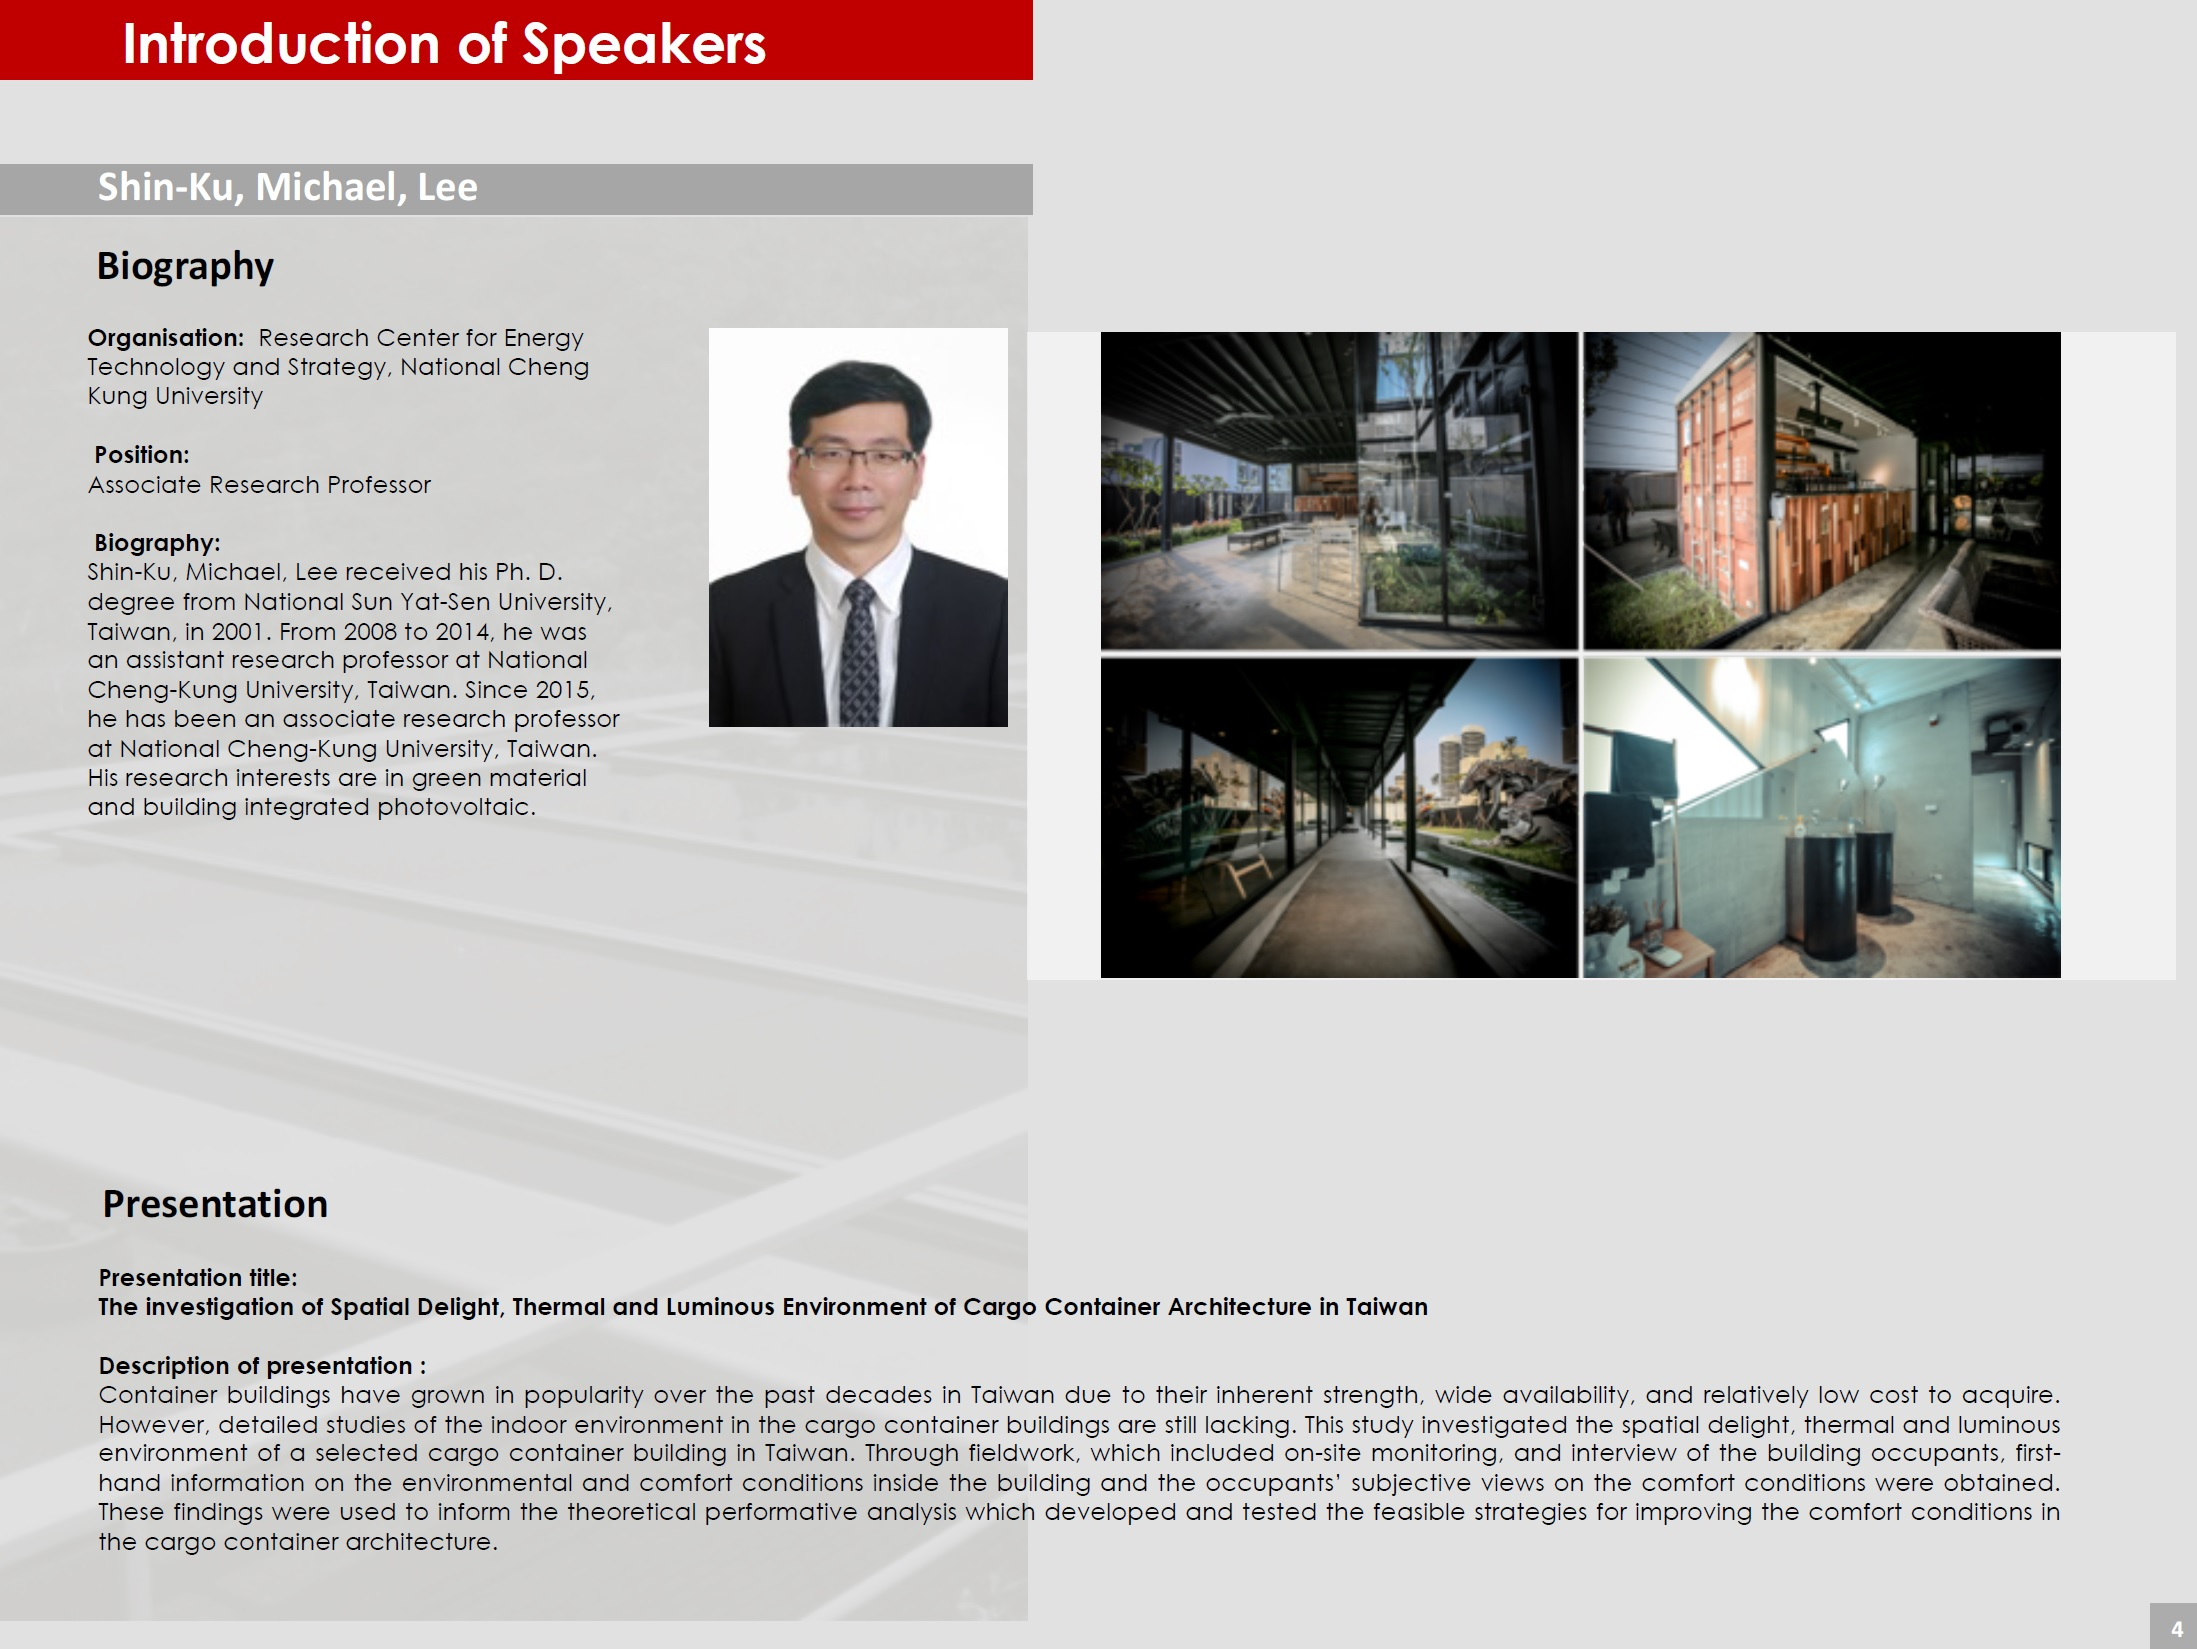 Page 4 (Introduction of Speakers)